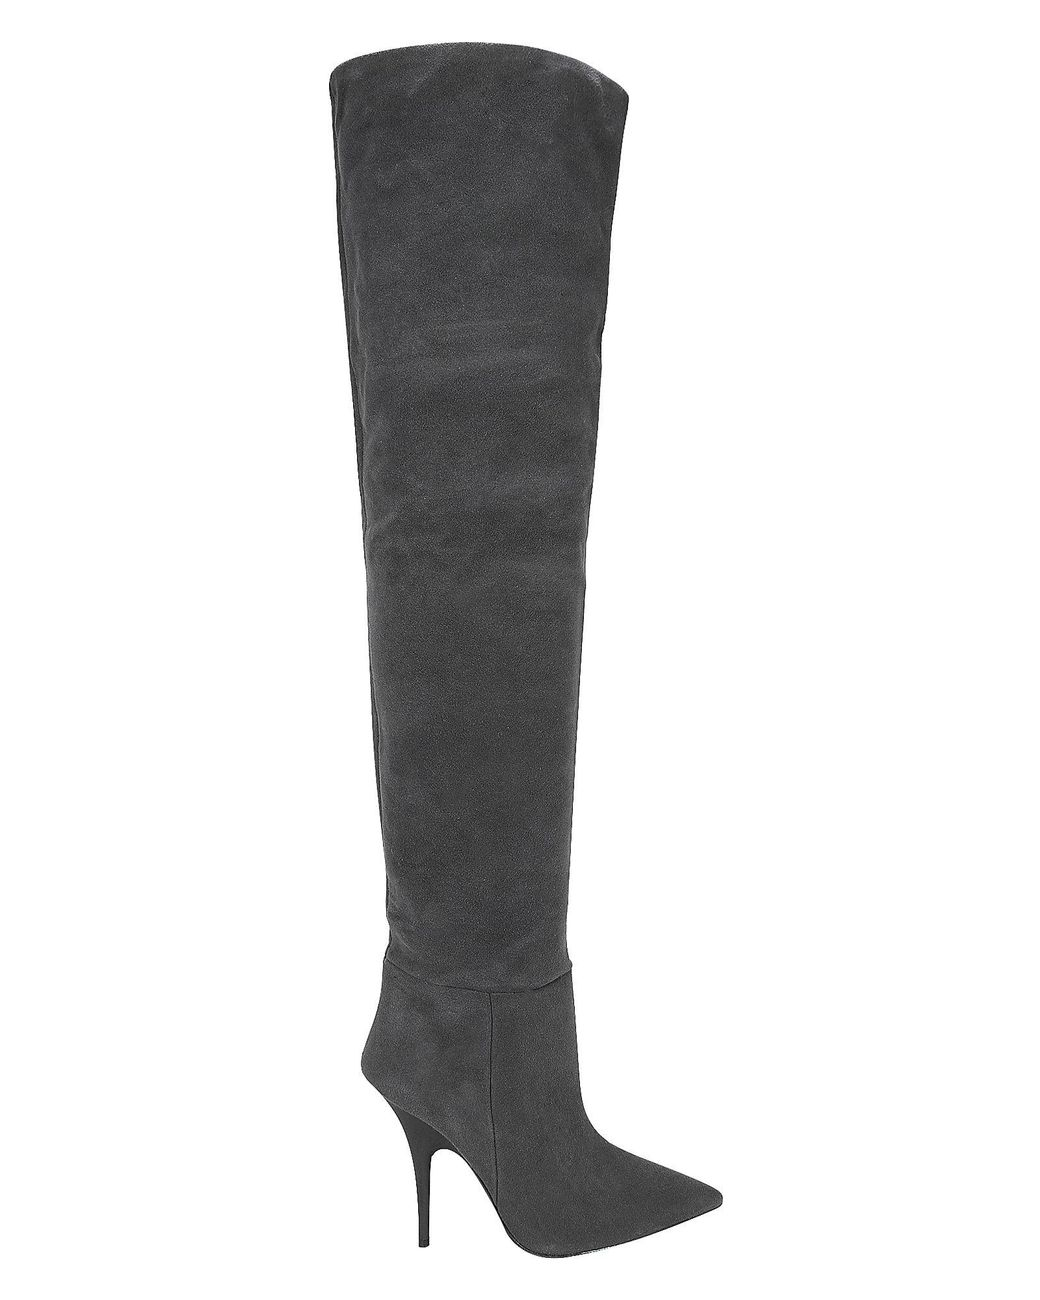 9e9f000e7 Yeezy Over-the-knee Suede Boots in Gray - Lyst